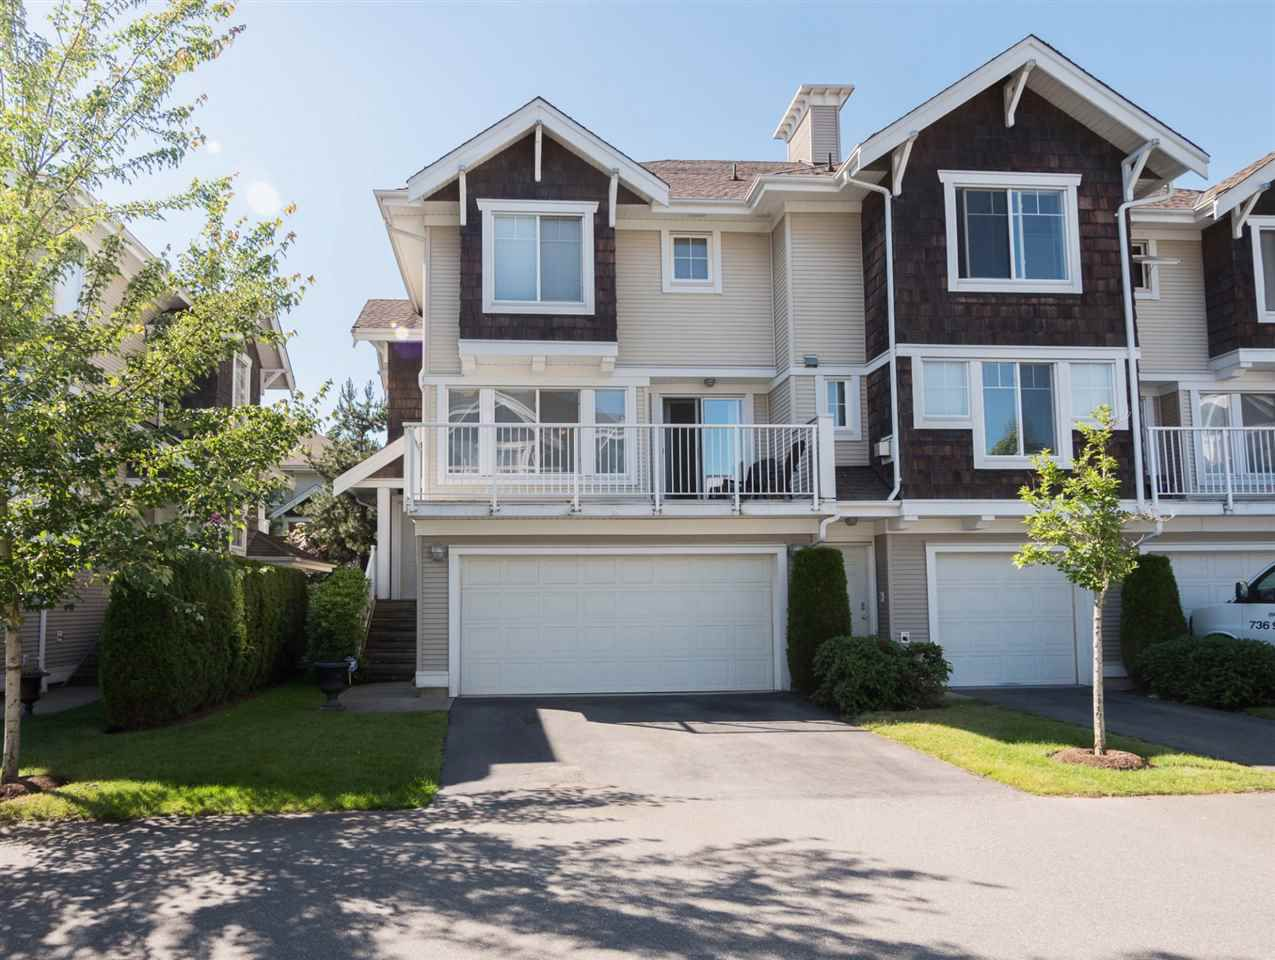 """Main Photo: 73 20760 DUNCAN Way in Langley: Langley City Townhouse for sale in """"WYNDHAM LANE II"""" : MLS®# R2278377"""